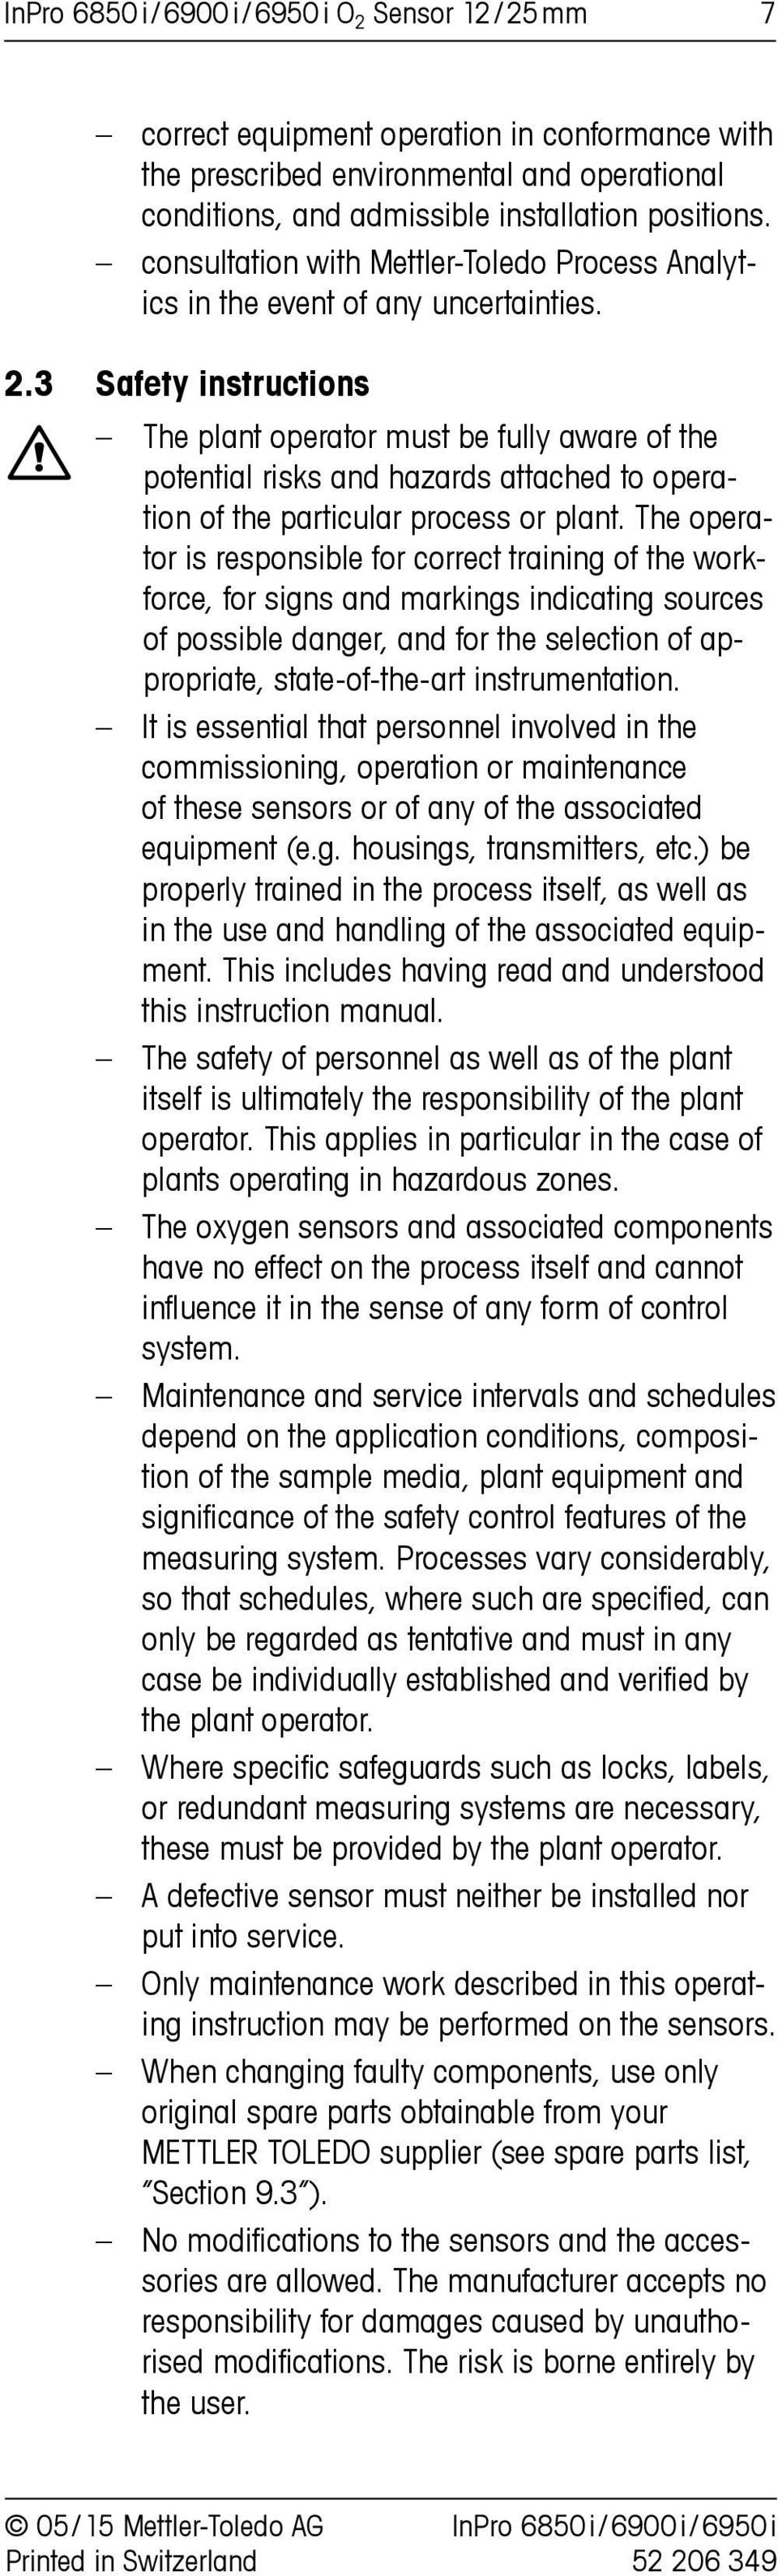 3 Safety instructions a The plant operator must be fully aware of the potential risks and hazards attached to operation of the particular process or plant.